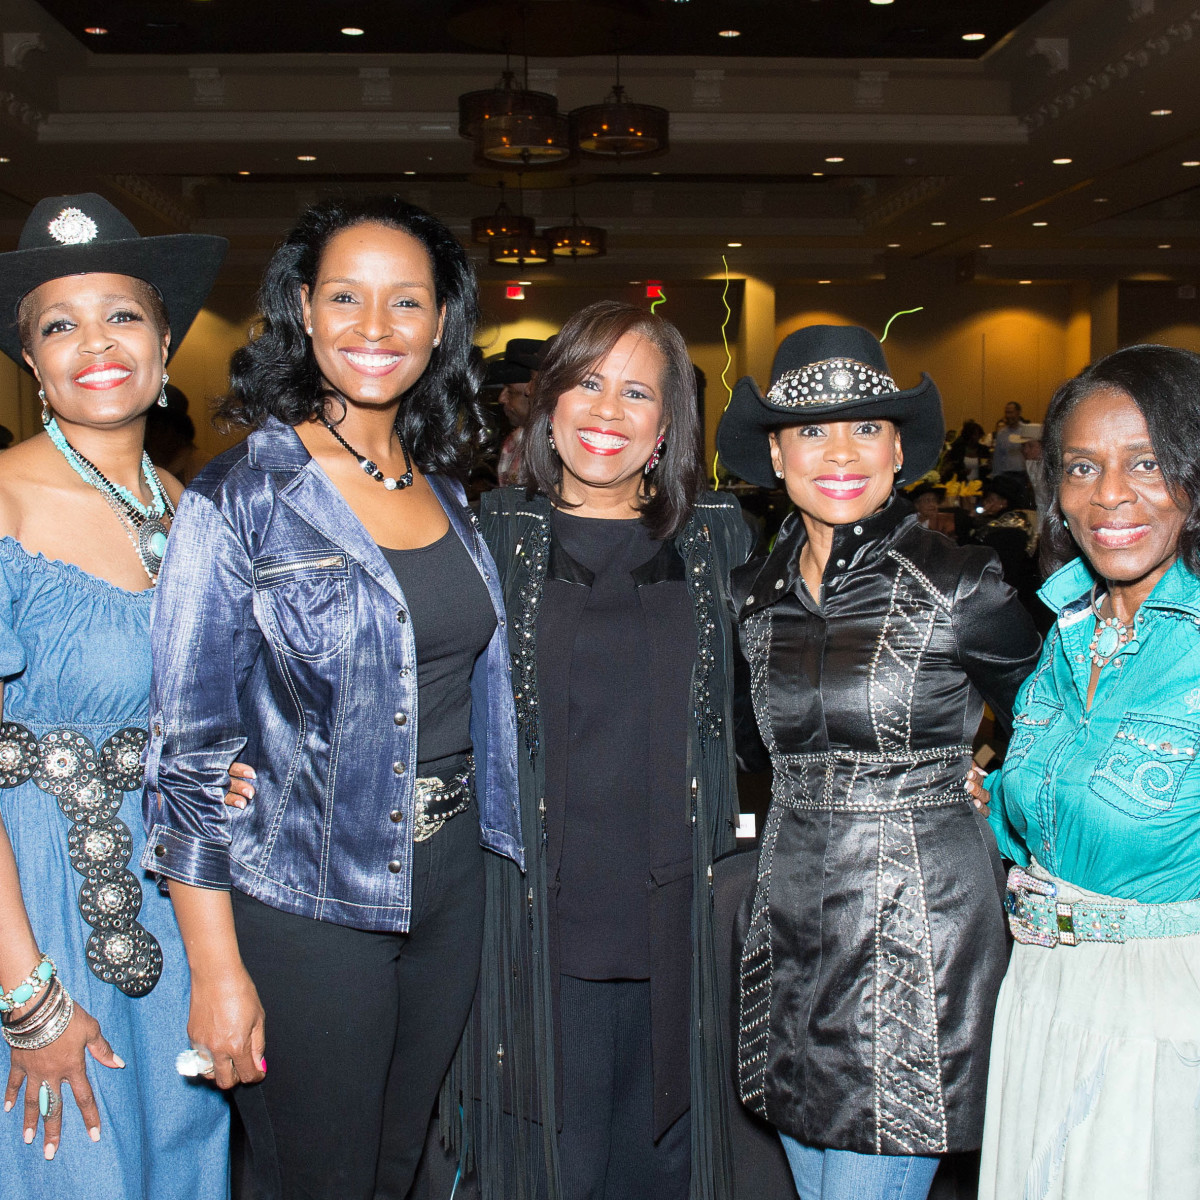 Boots and Bling Vonda Mays, Winnel Herron, Melanie Lawson, Felicia Rolfe and Clarease Yates